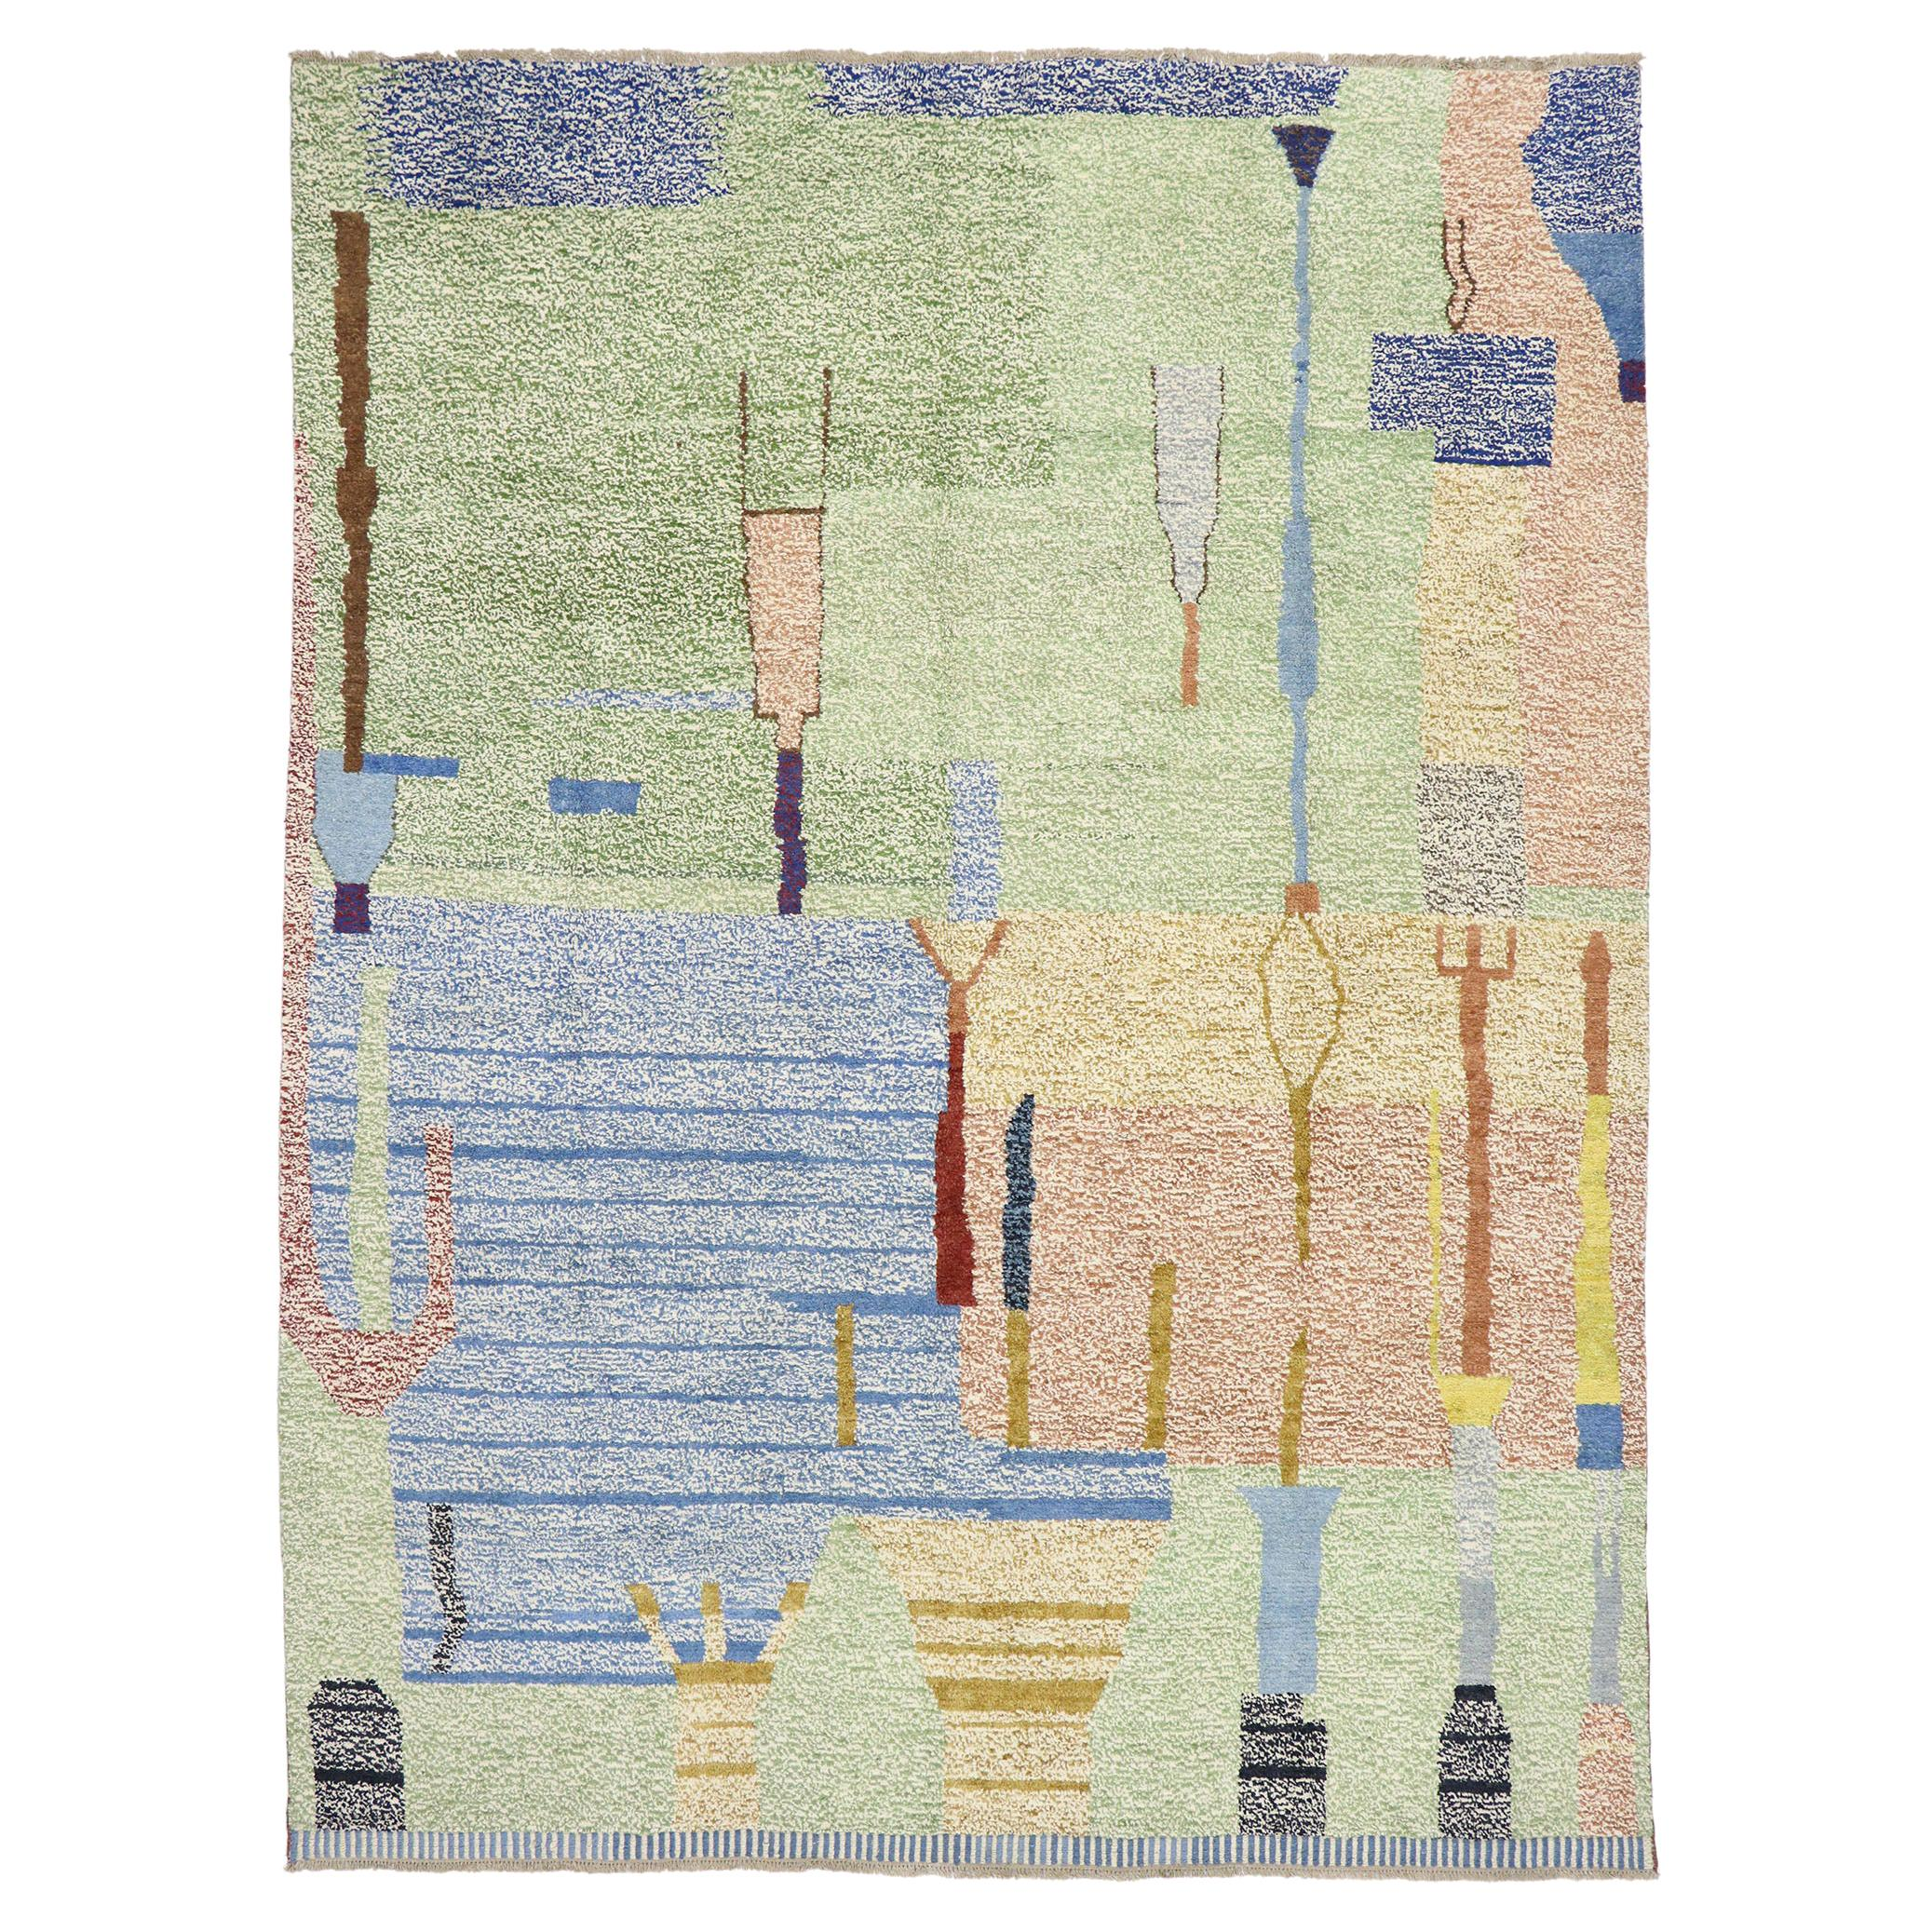 New Contemporary Moroccan Style Rug with Abstract Postmodern Pointillism Design